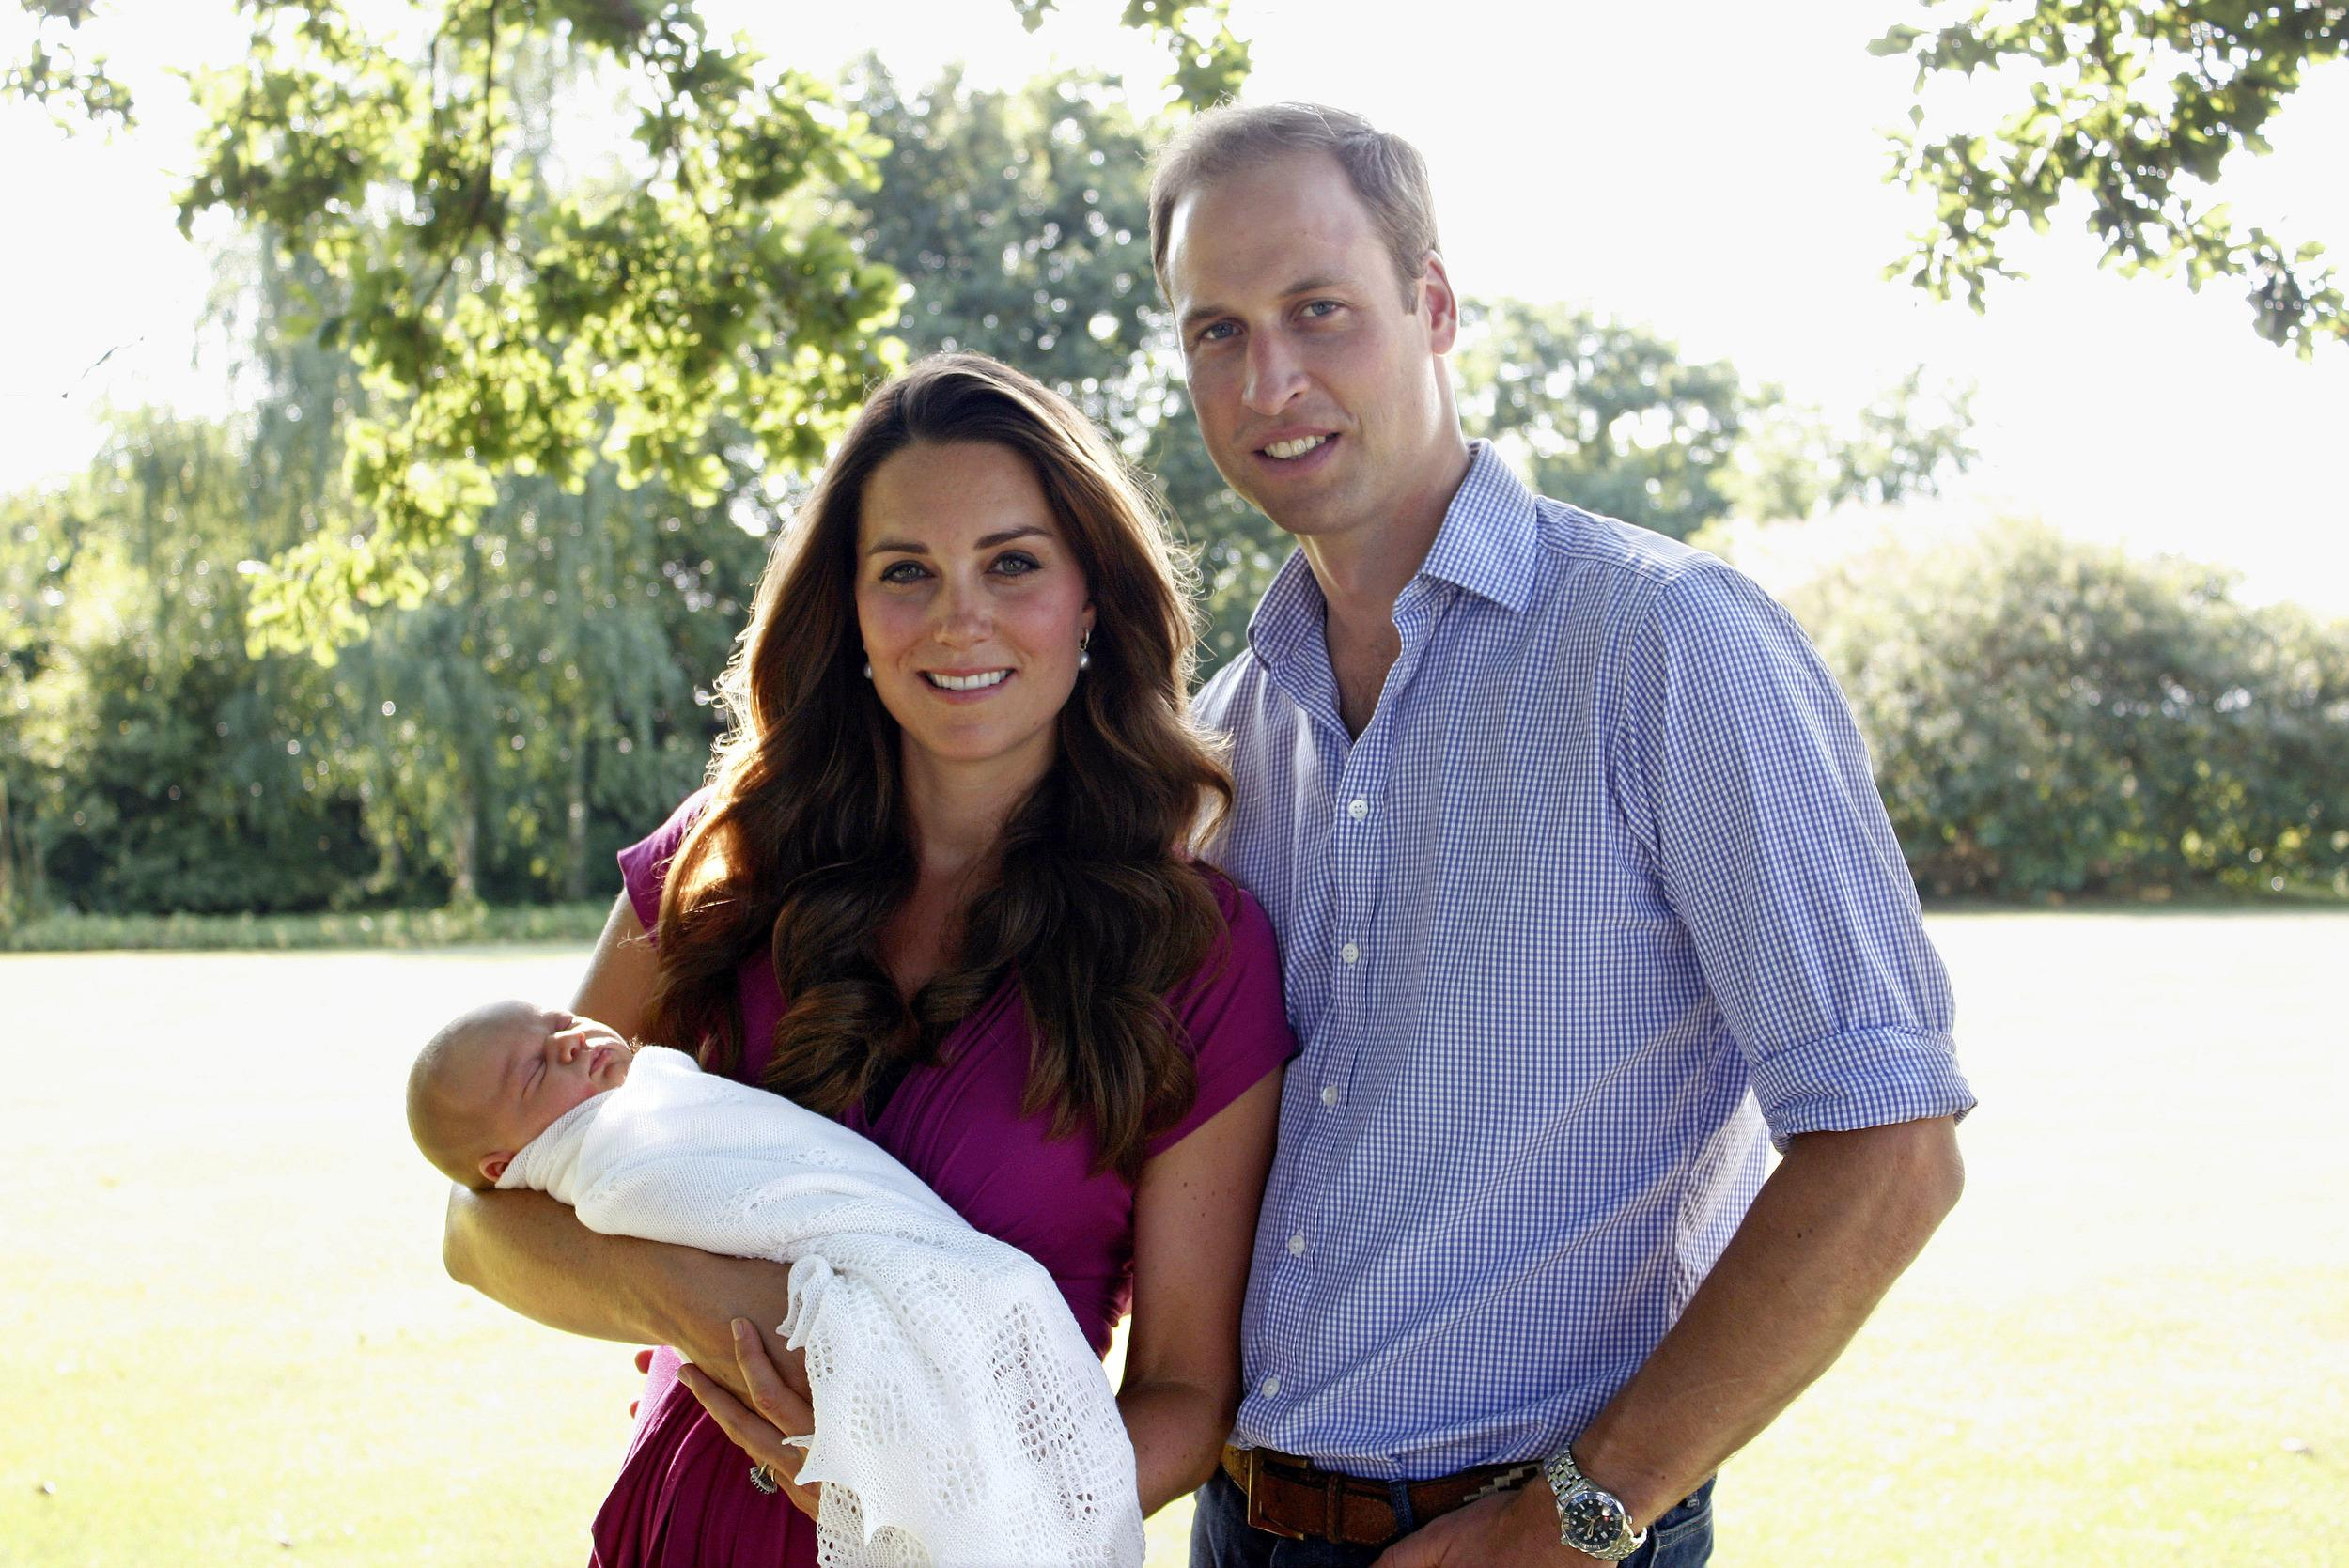 Kate and William pose with Prince George for the family's first official portraits at her family's home.